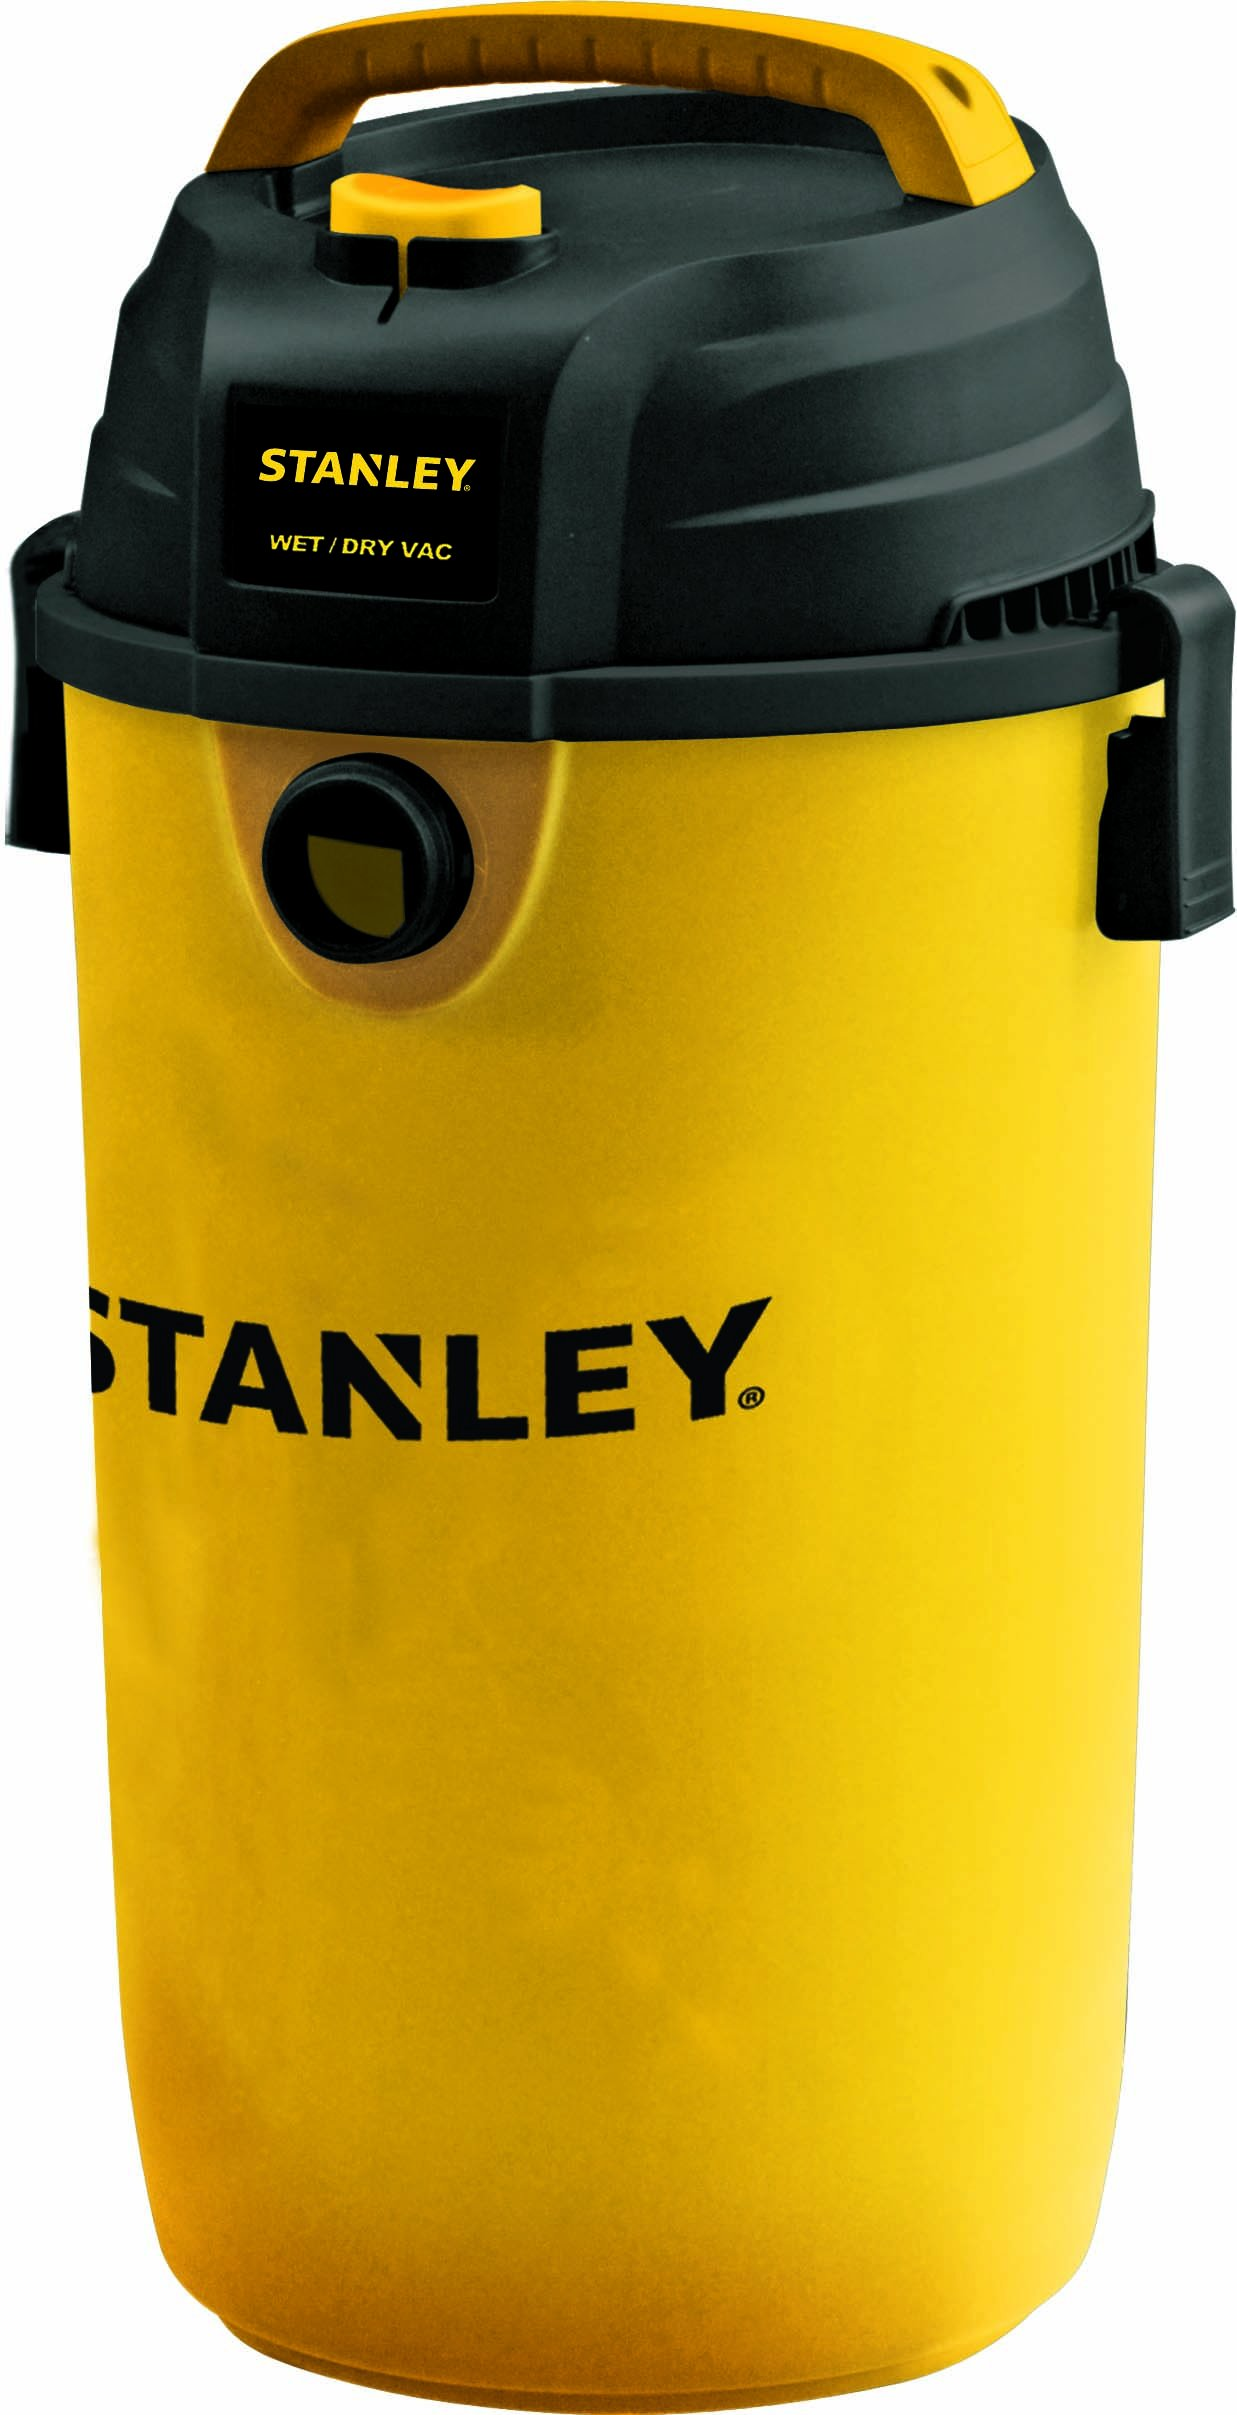 Stanley SL18139P Wet/Dry Hanging Vacuum, 4 Horsepower, 4.5 gallon, Yellow